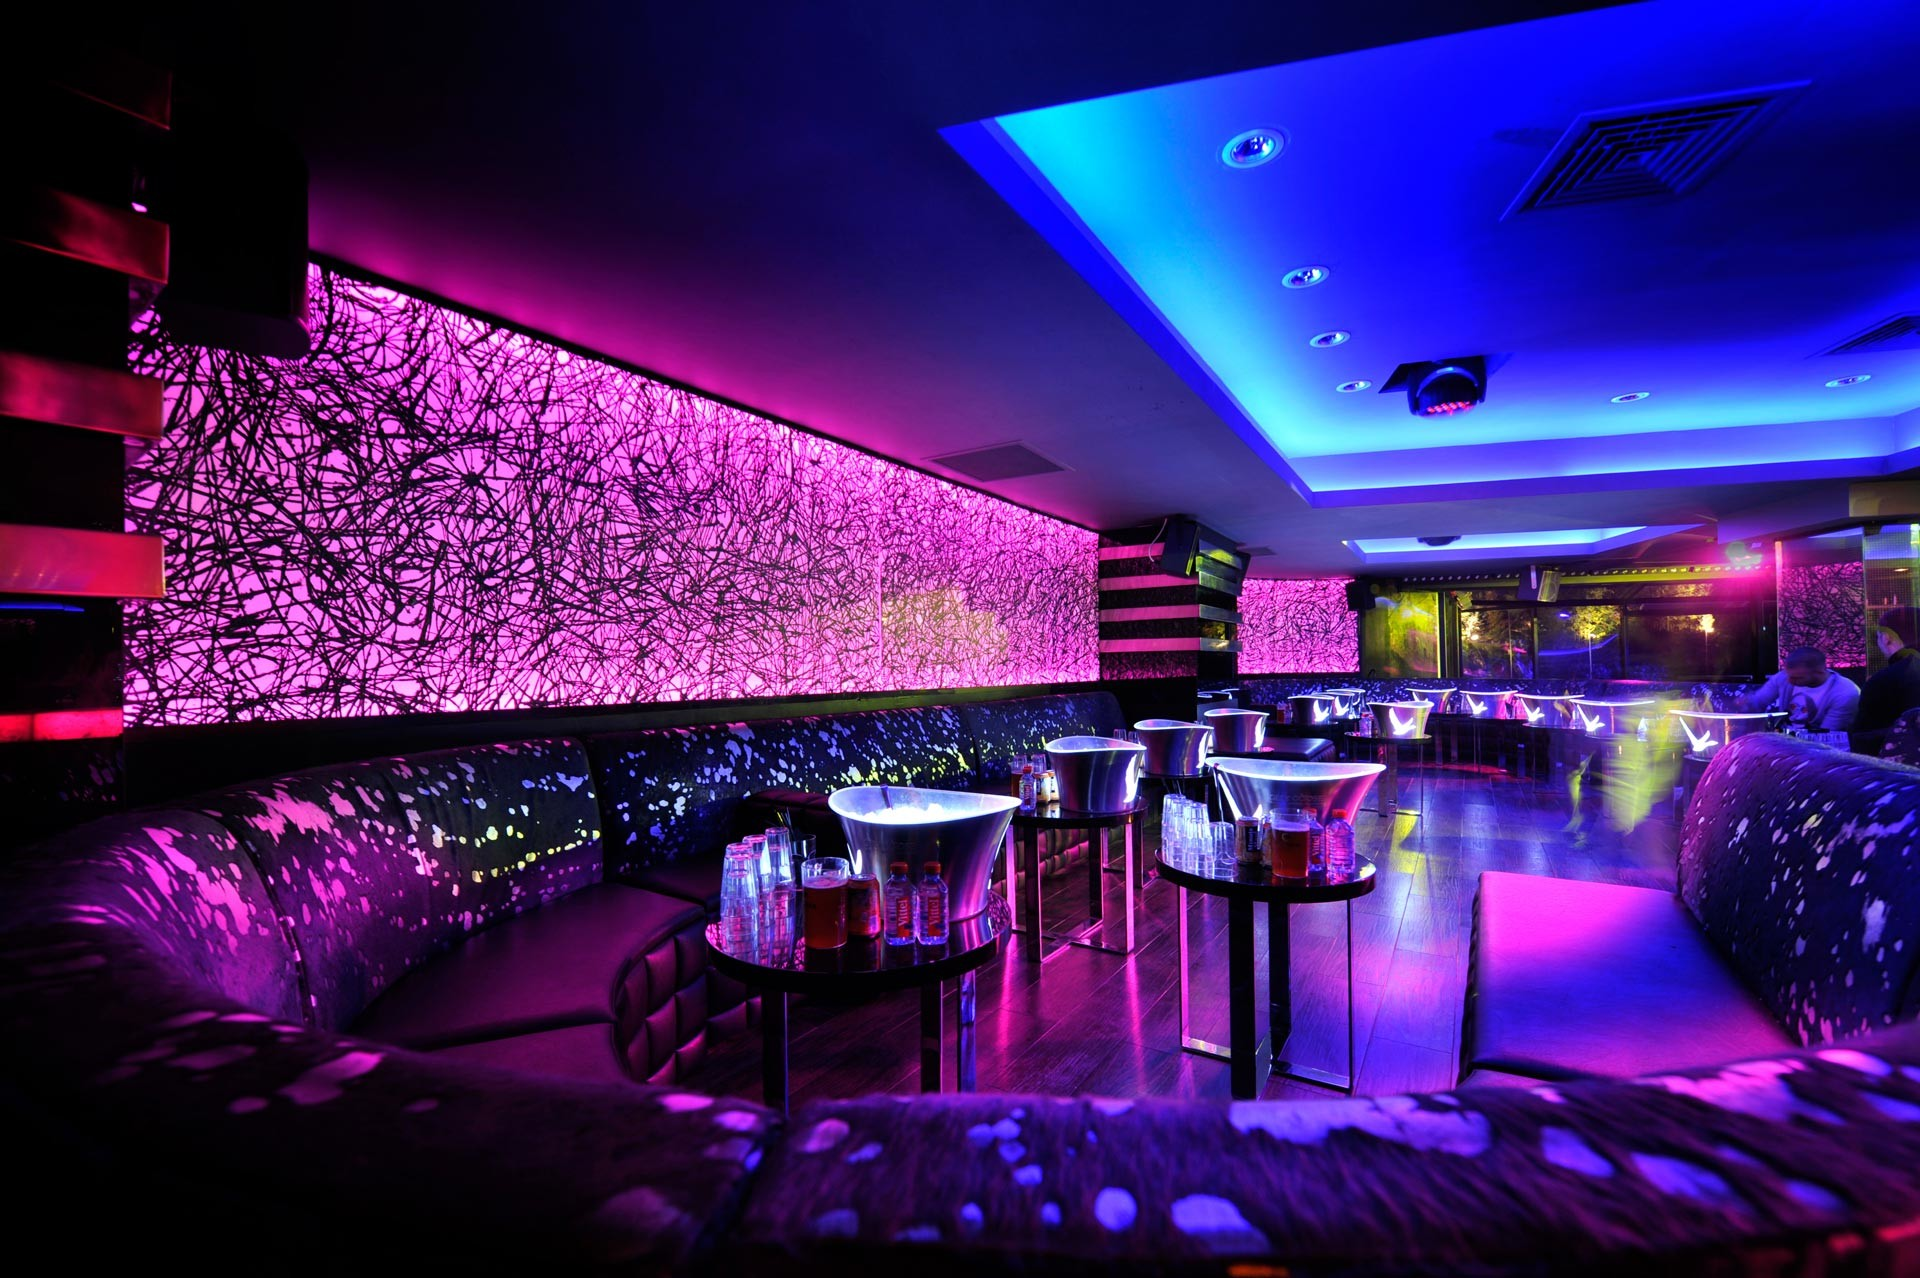 Wonderful Neon Lights In A Night Club Lounge HD Desktop Background wallpaper  free